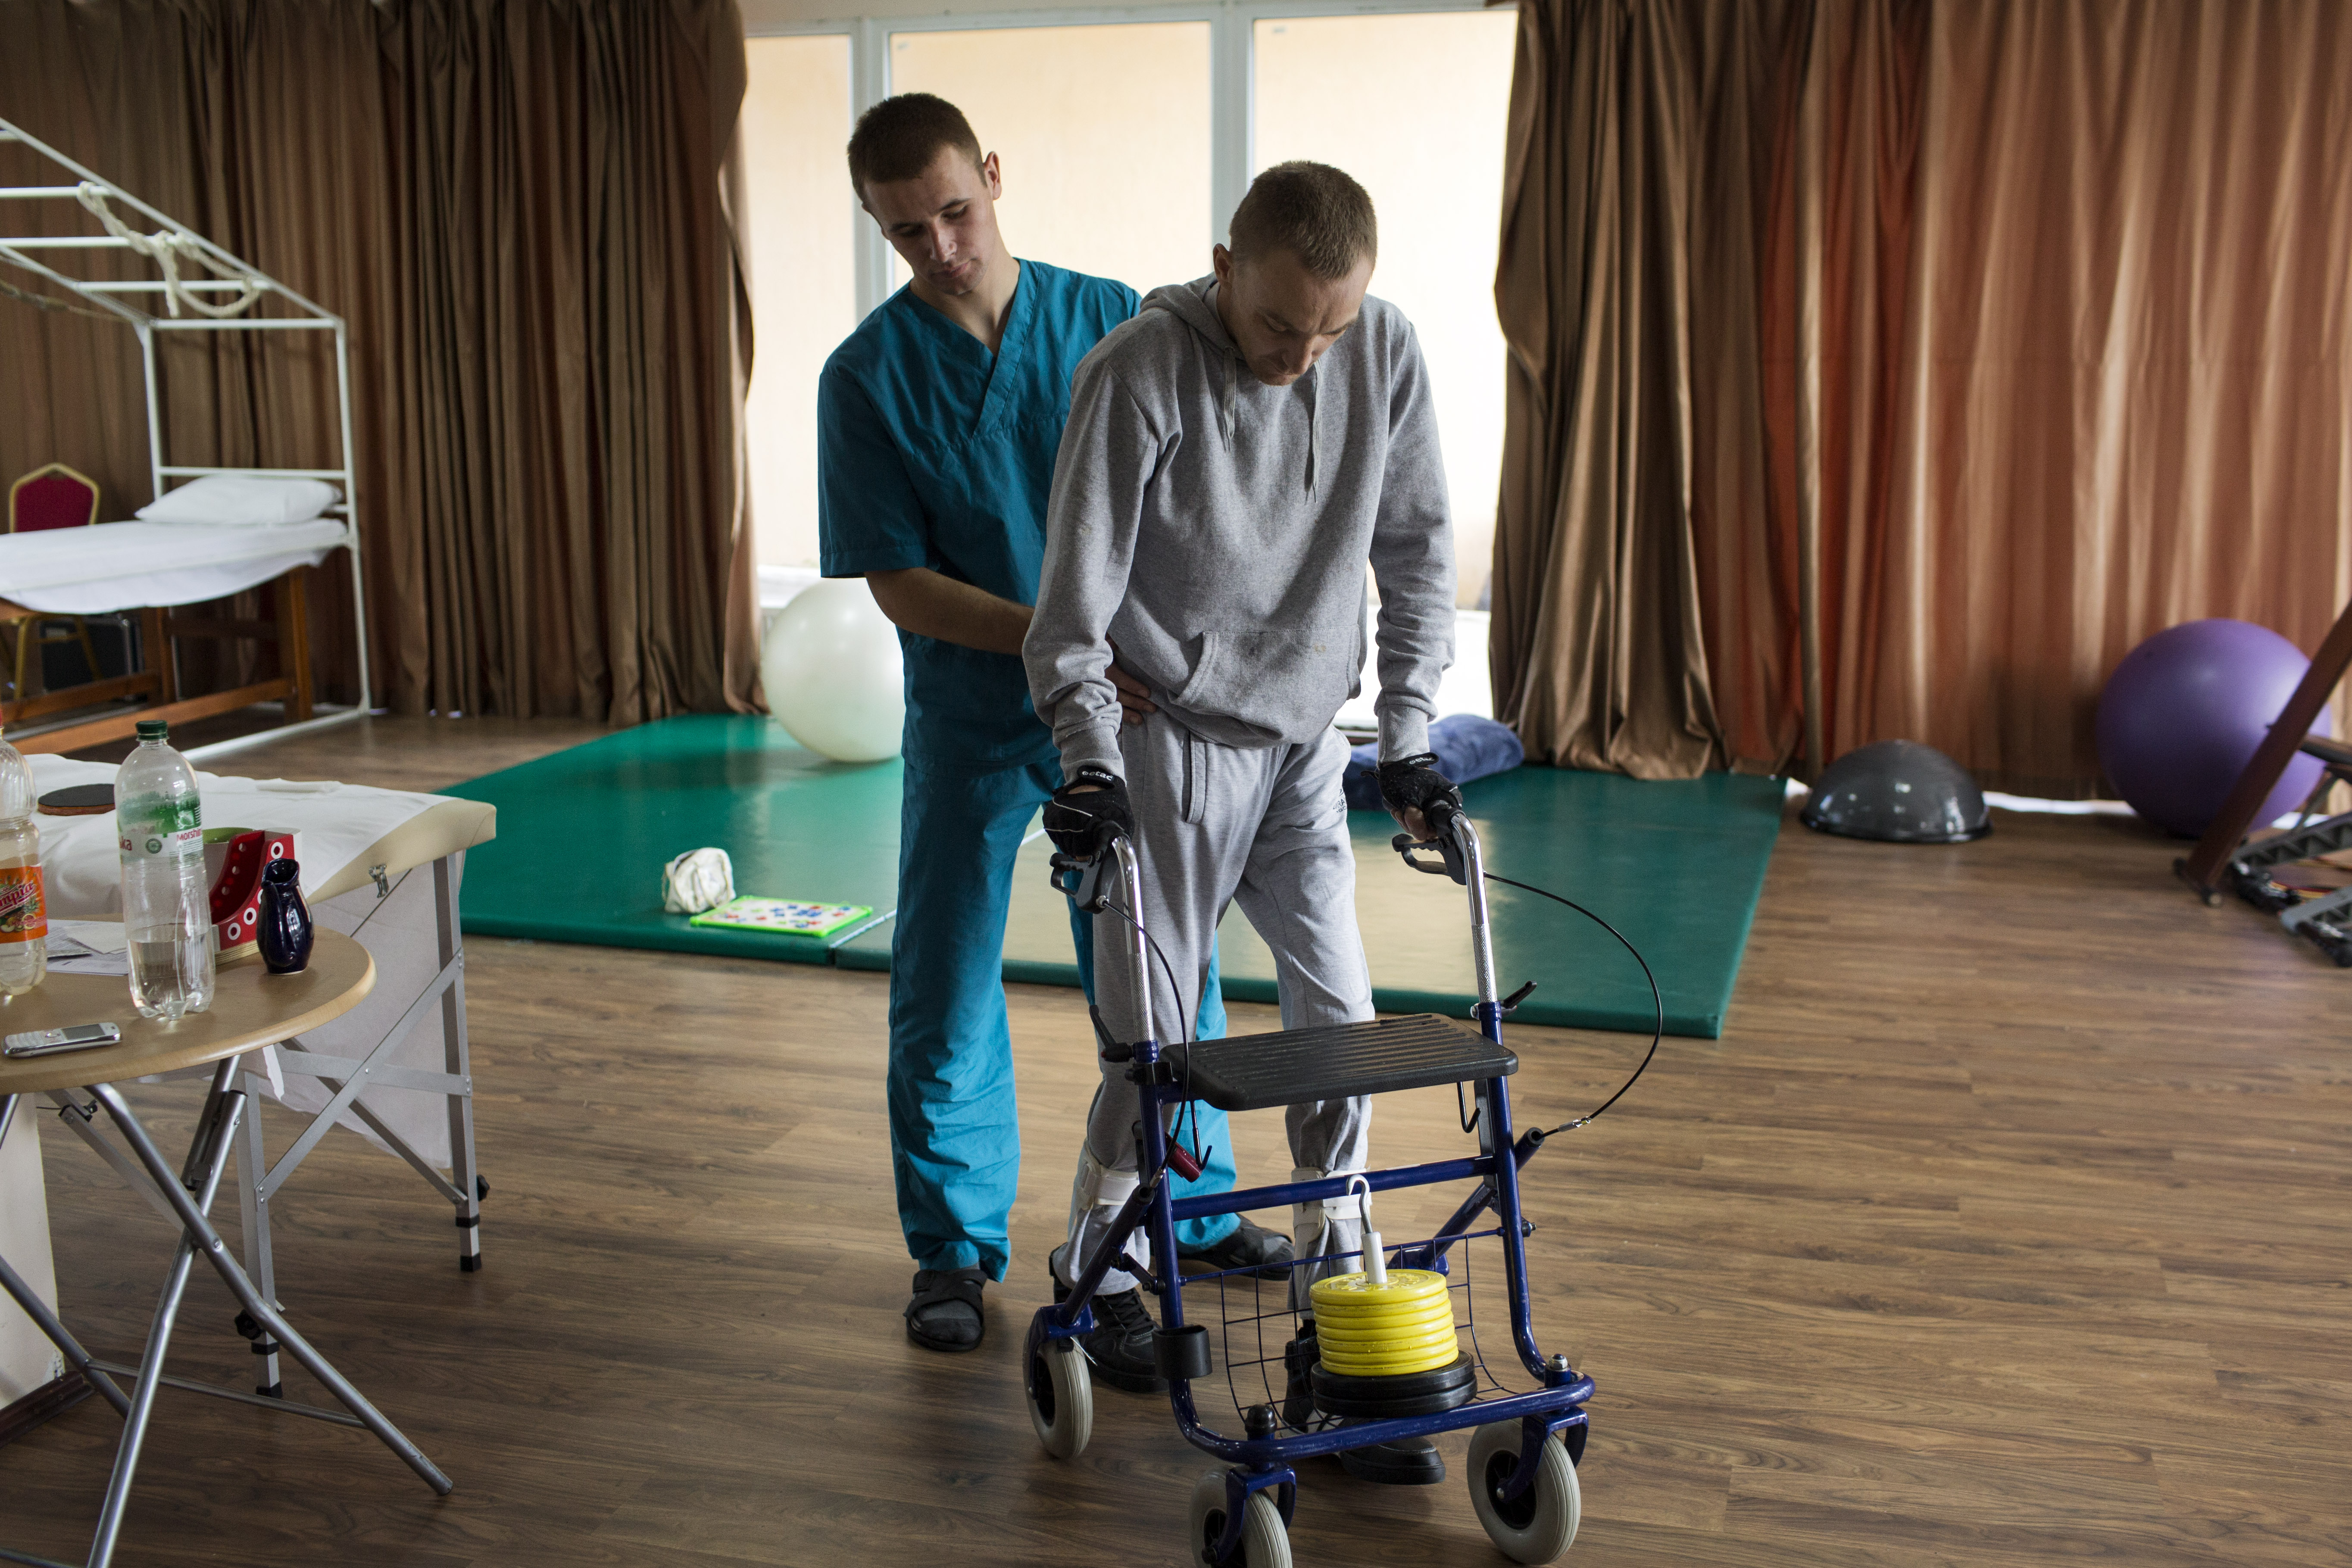 """Volodymyr Honcharovsky, 31, a married father of four children, works with a physical therapist at a training center in Truskavets, Ukraine, Oct. 6, 2014. He was severely wounded on Feb. 20, 2014, when he was shot three times—twice in the back, once in the right arm—while attempting to reach wounded demonstrators who had been shot by security forces during the Euromaidan revolution in Kiev. Honcharovsky has feeling in his legs and can take small steps for short distances, but his legs have atrophied. Often, it is extremely difficult for him to walk due to extreme pain caused by nerve damage. """"I pray and place my hope in the Lord that he will help me to stand on my legs,"""" he said."""